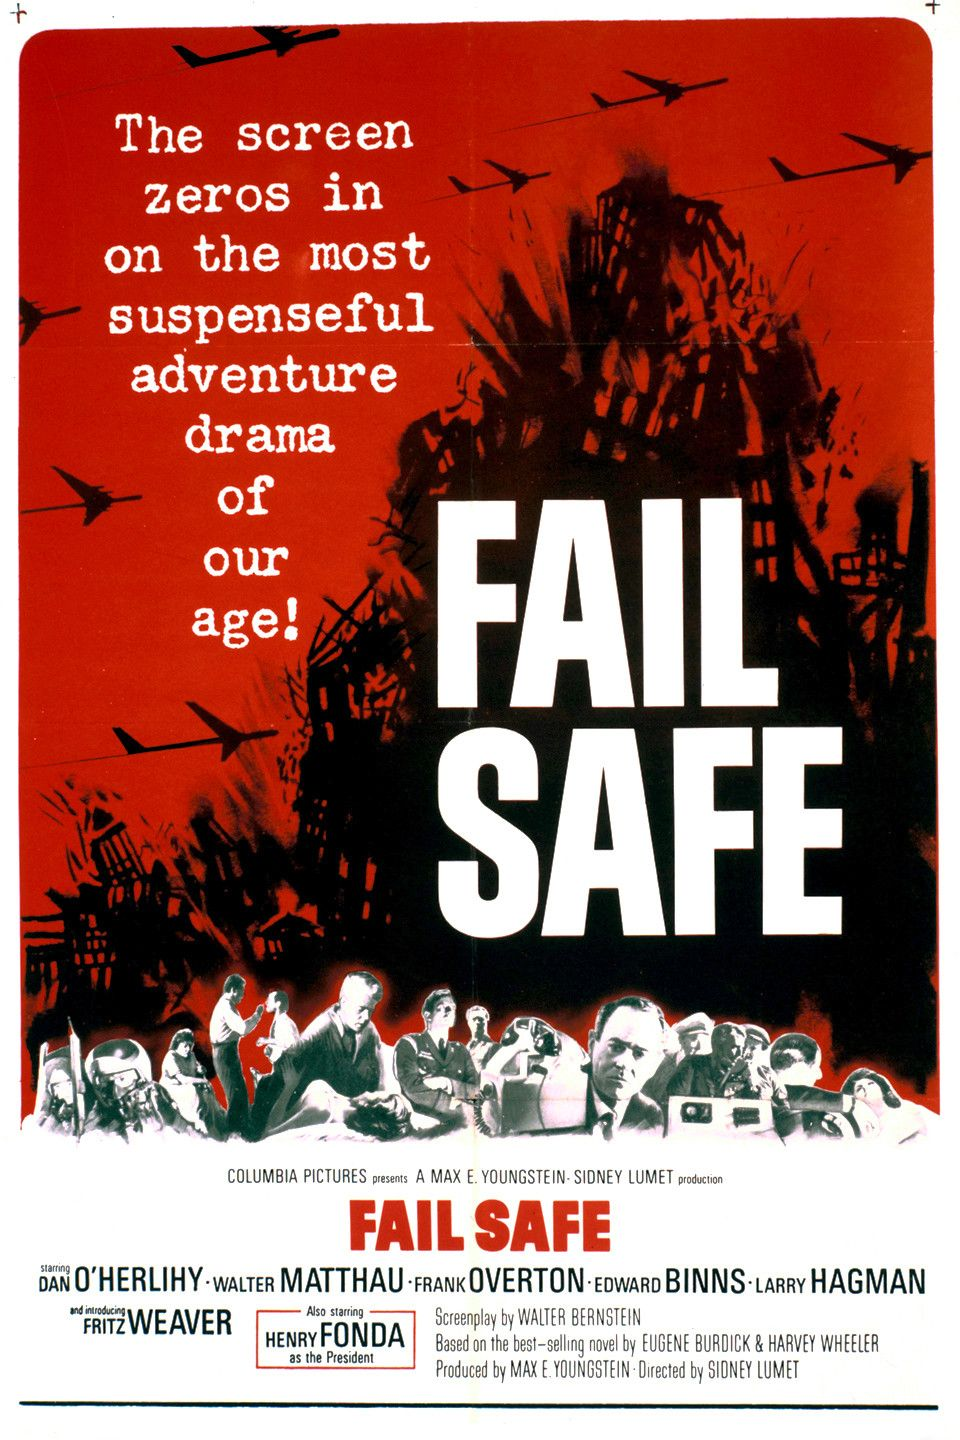 Fail Safe (1964) is one of the greatest anti war thrillers